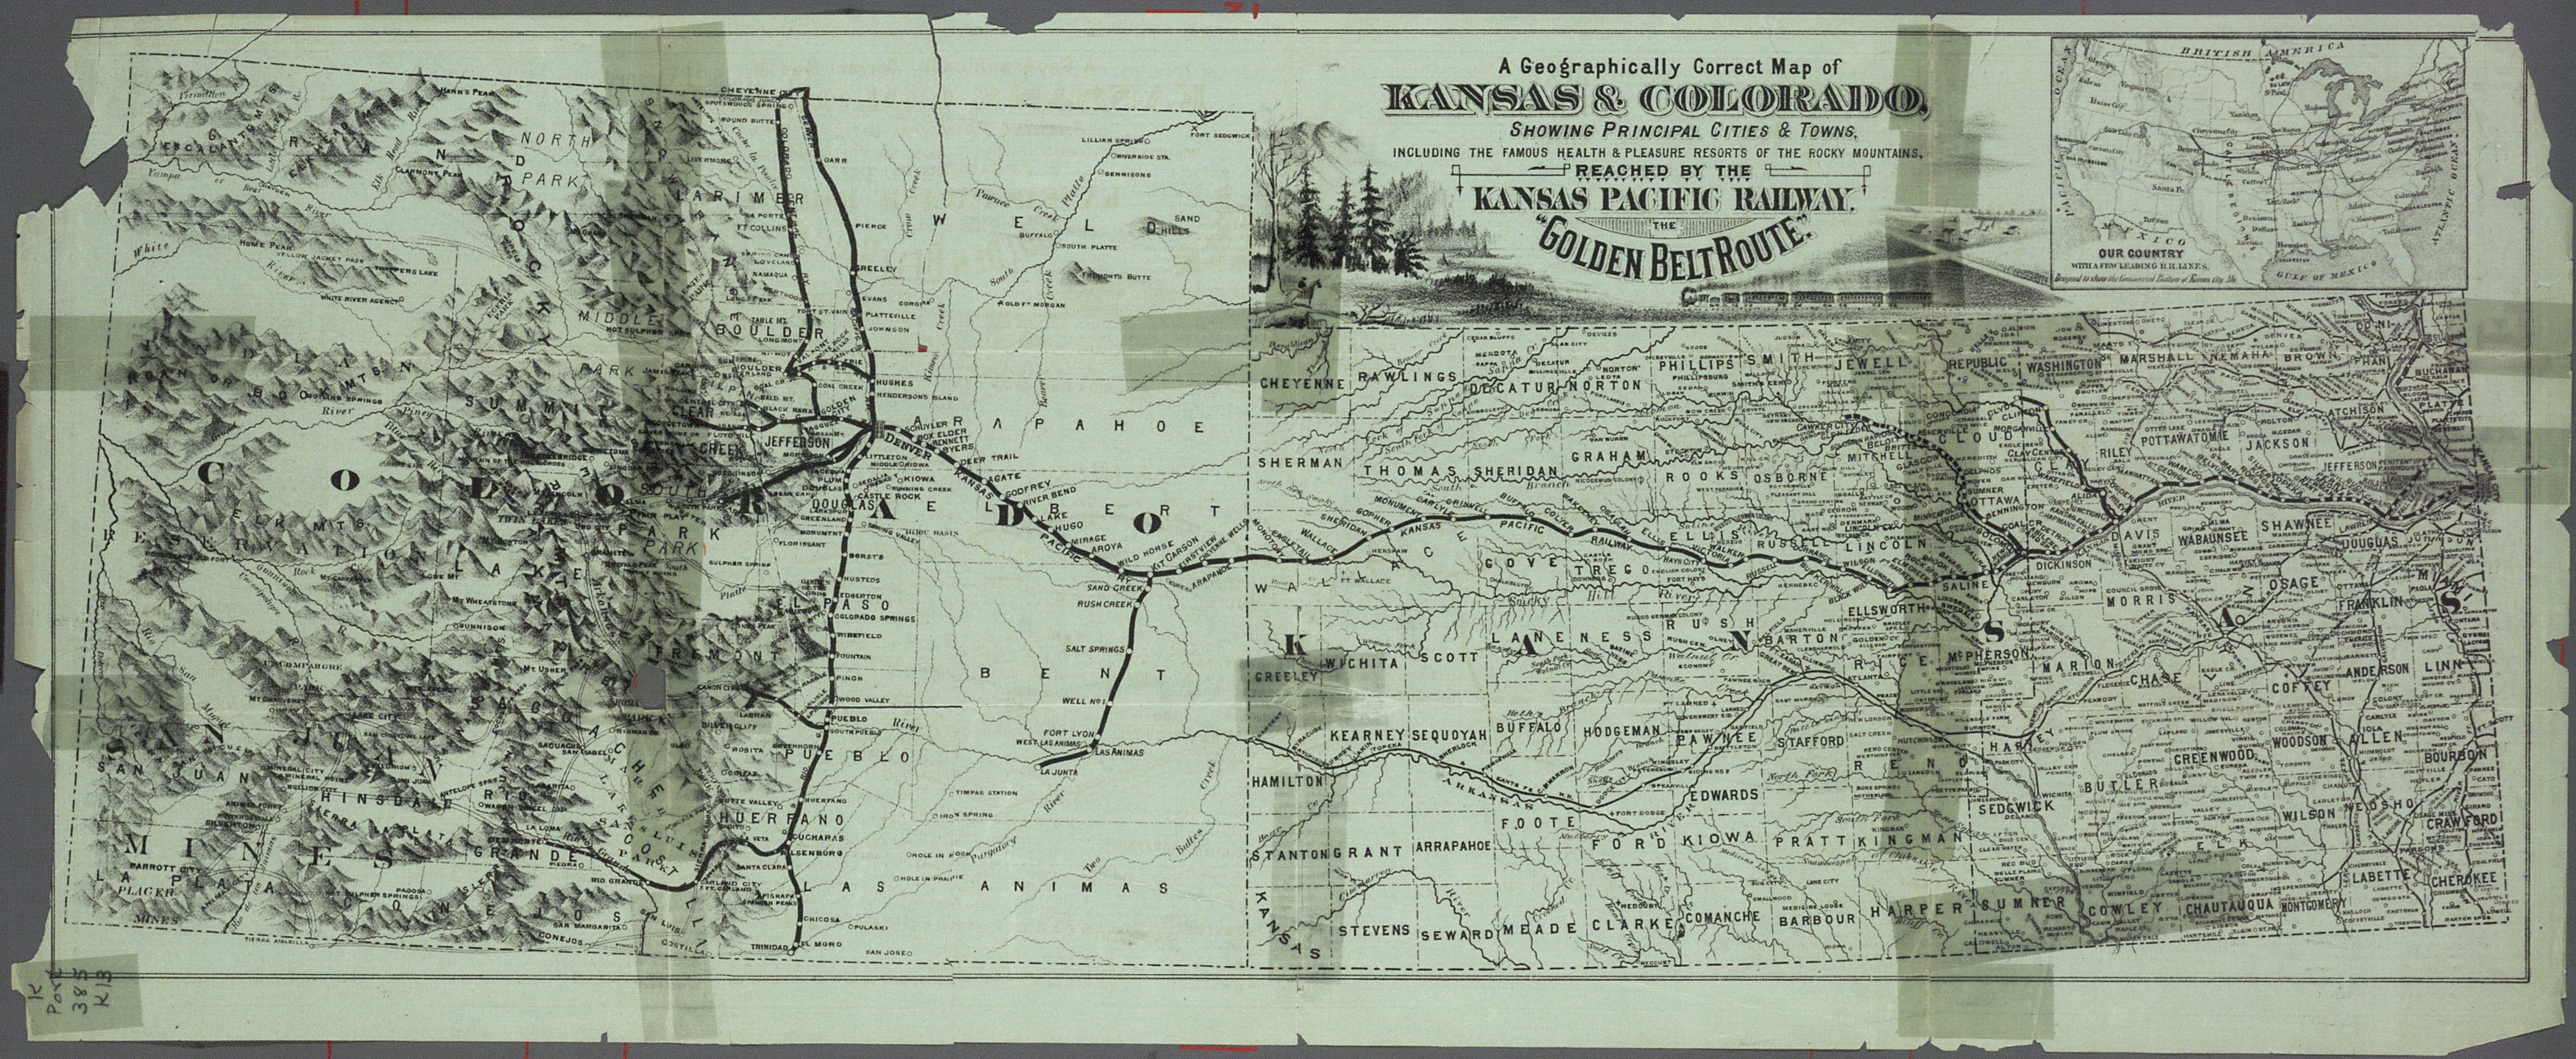 Free! Take a correct county map of Kansas Pacific Railway, Kansas and Colorado - 1